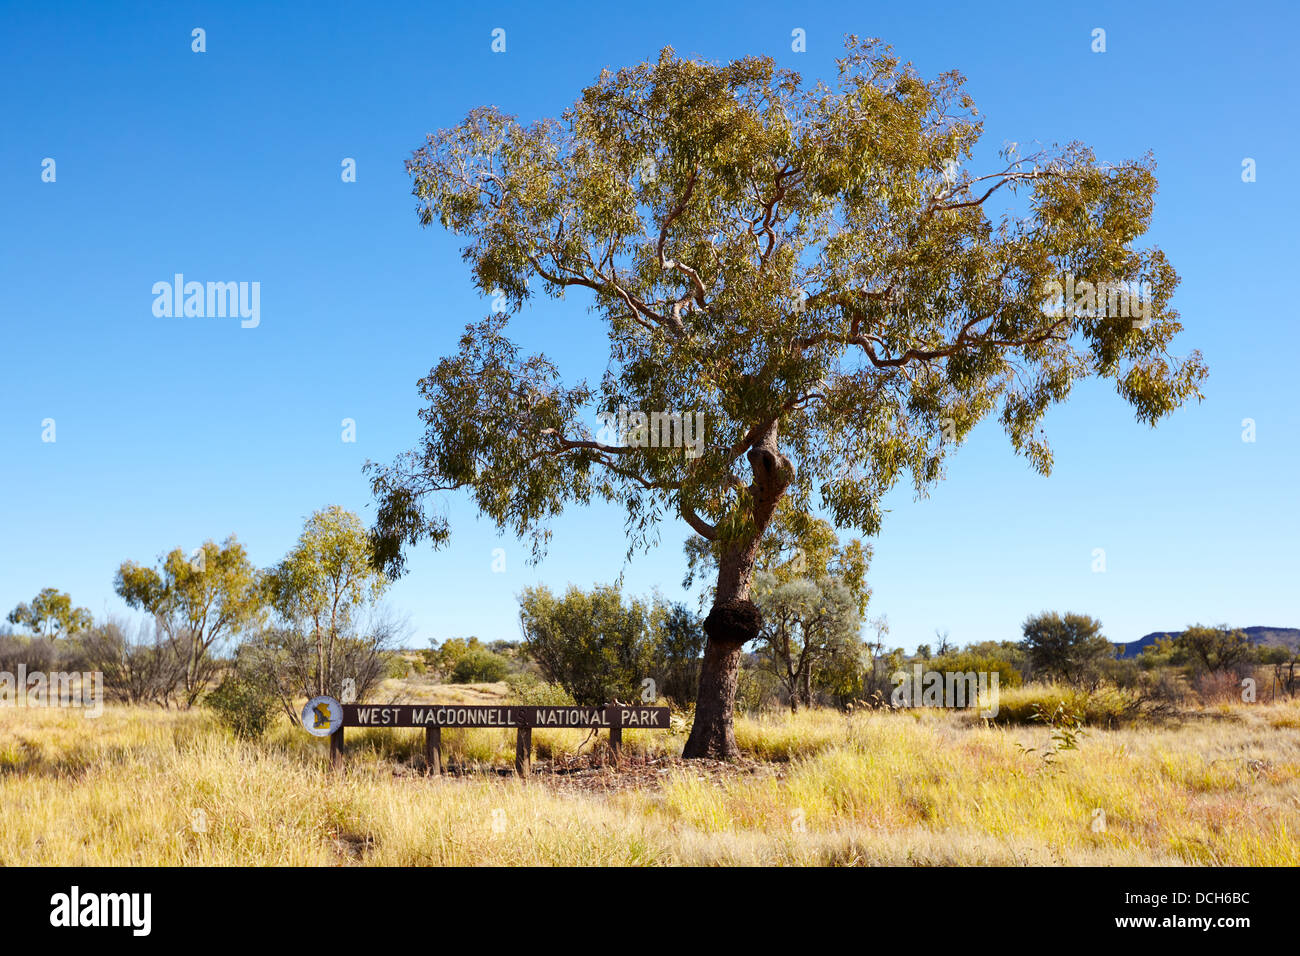 West MacDonnell National Park, Australia - Stock Image